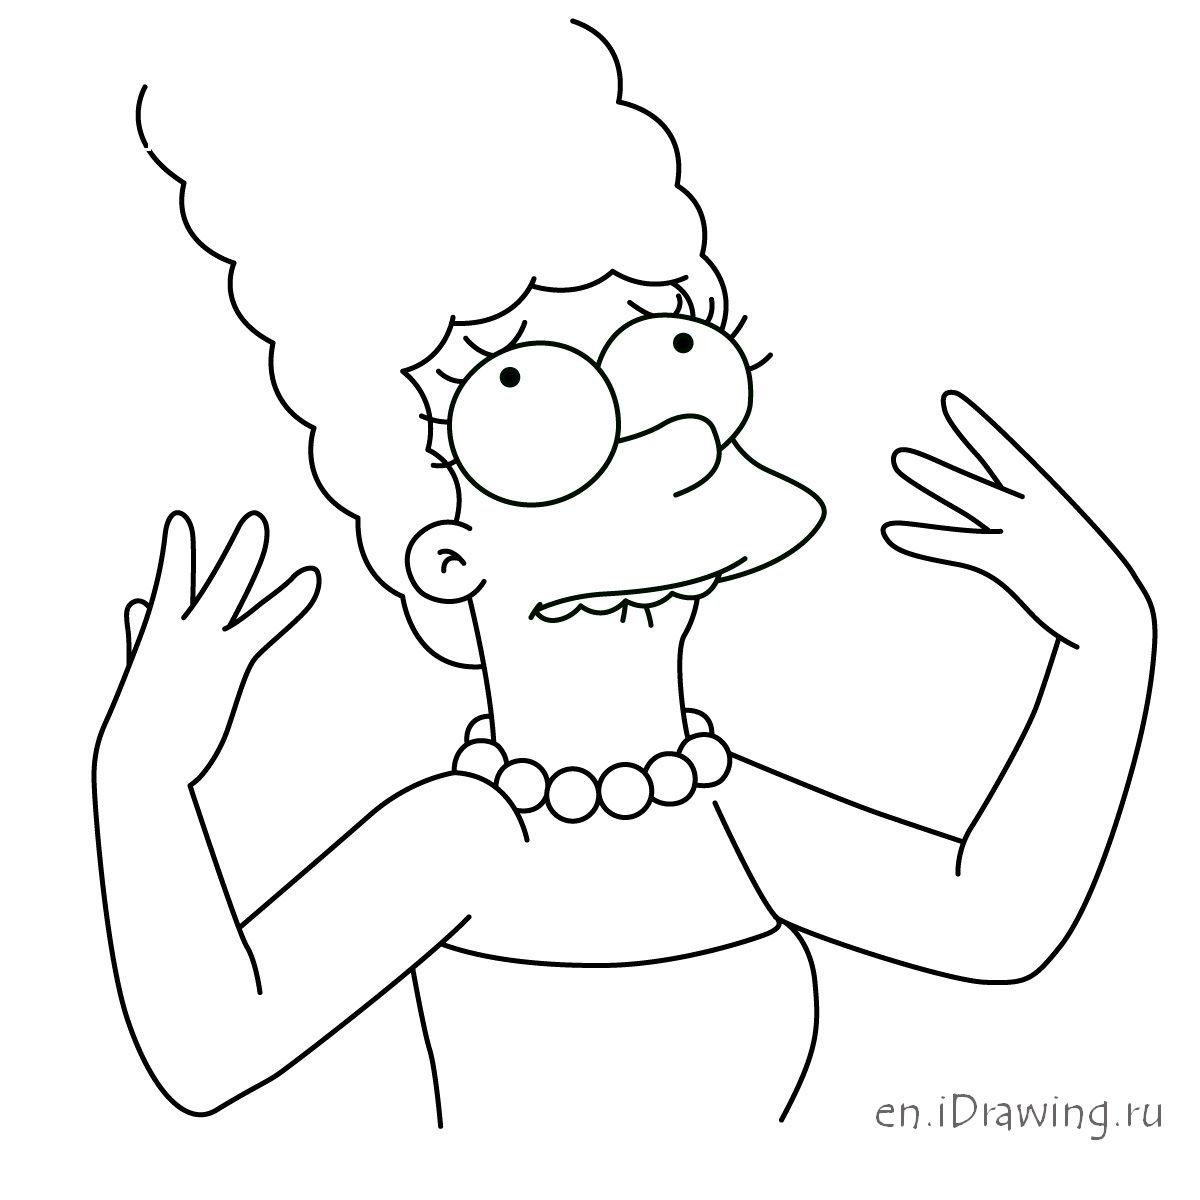 1200x1200 How To Draw The Indignant Marge Simpson